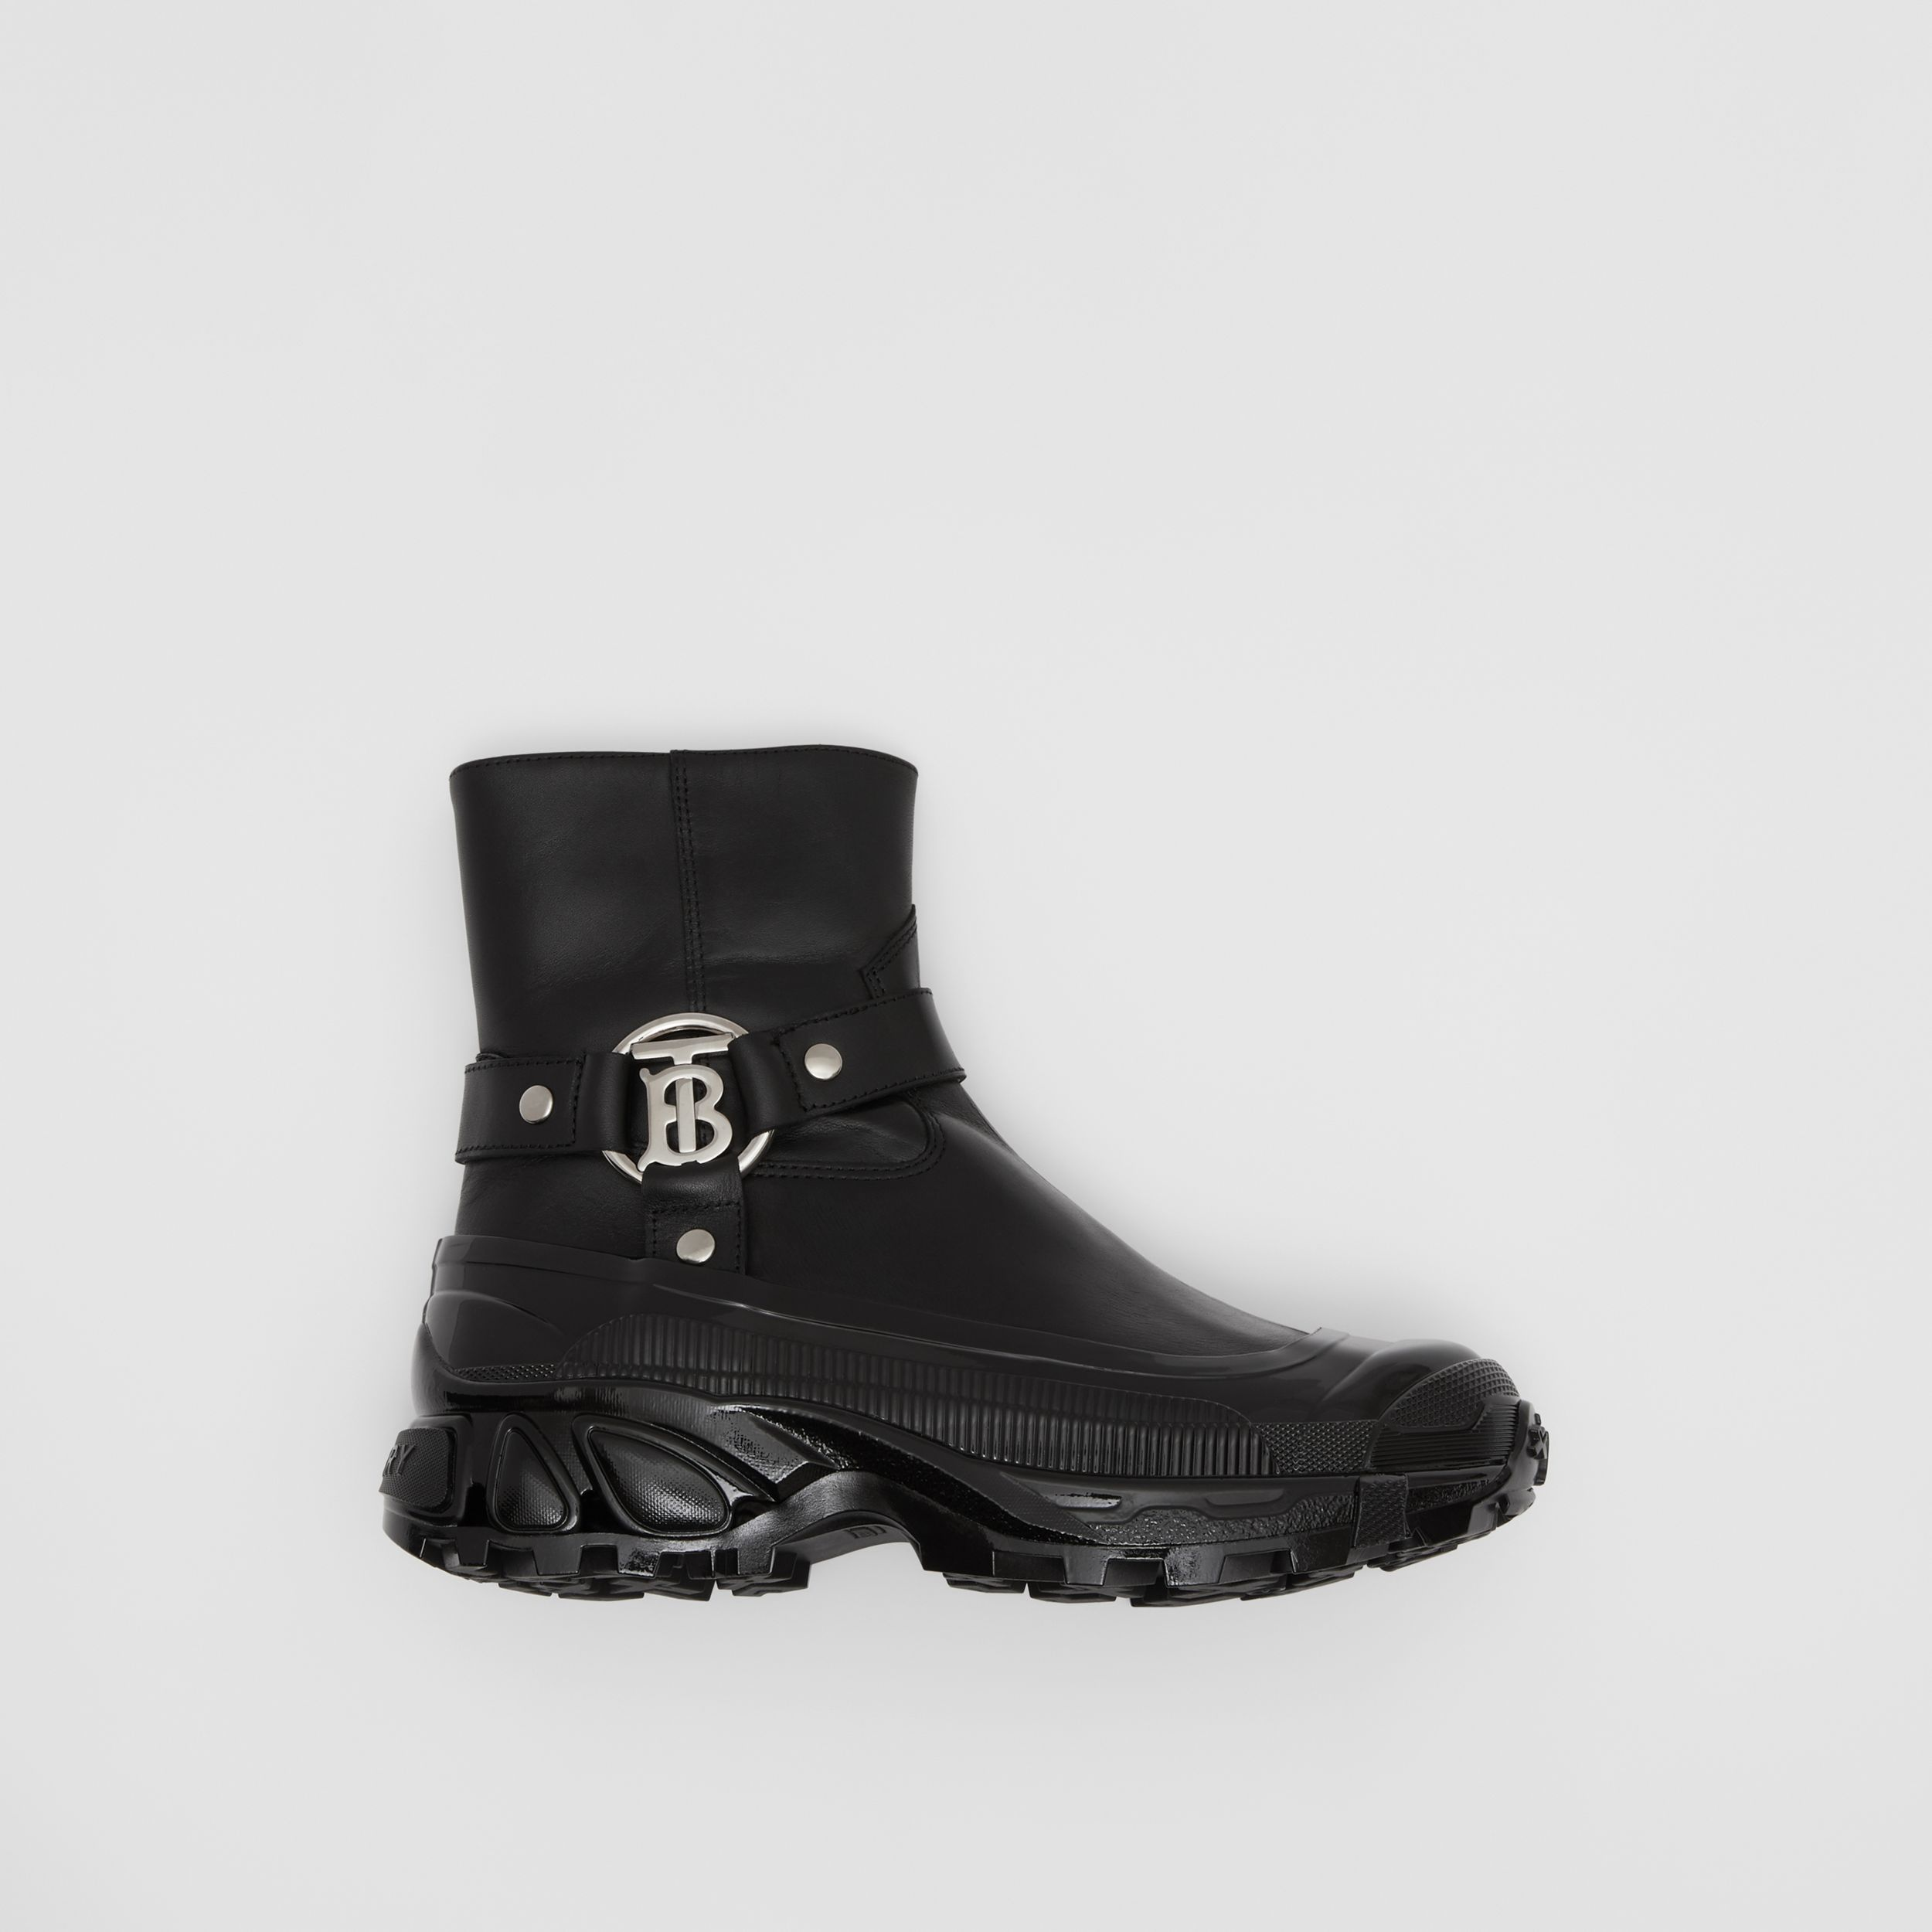 Monogram Motif Buckle Leather Boots in Black - Women | Burberry Australia - 1